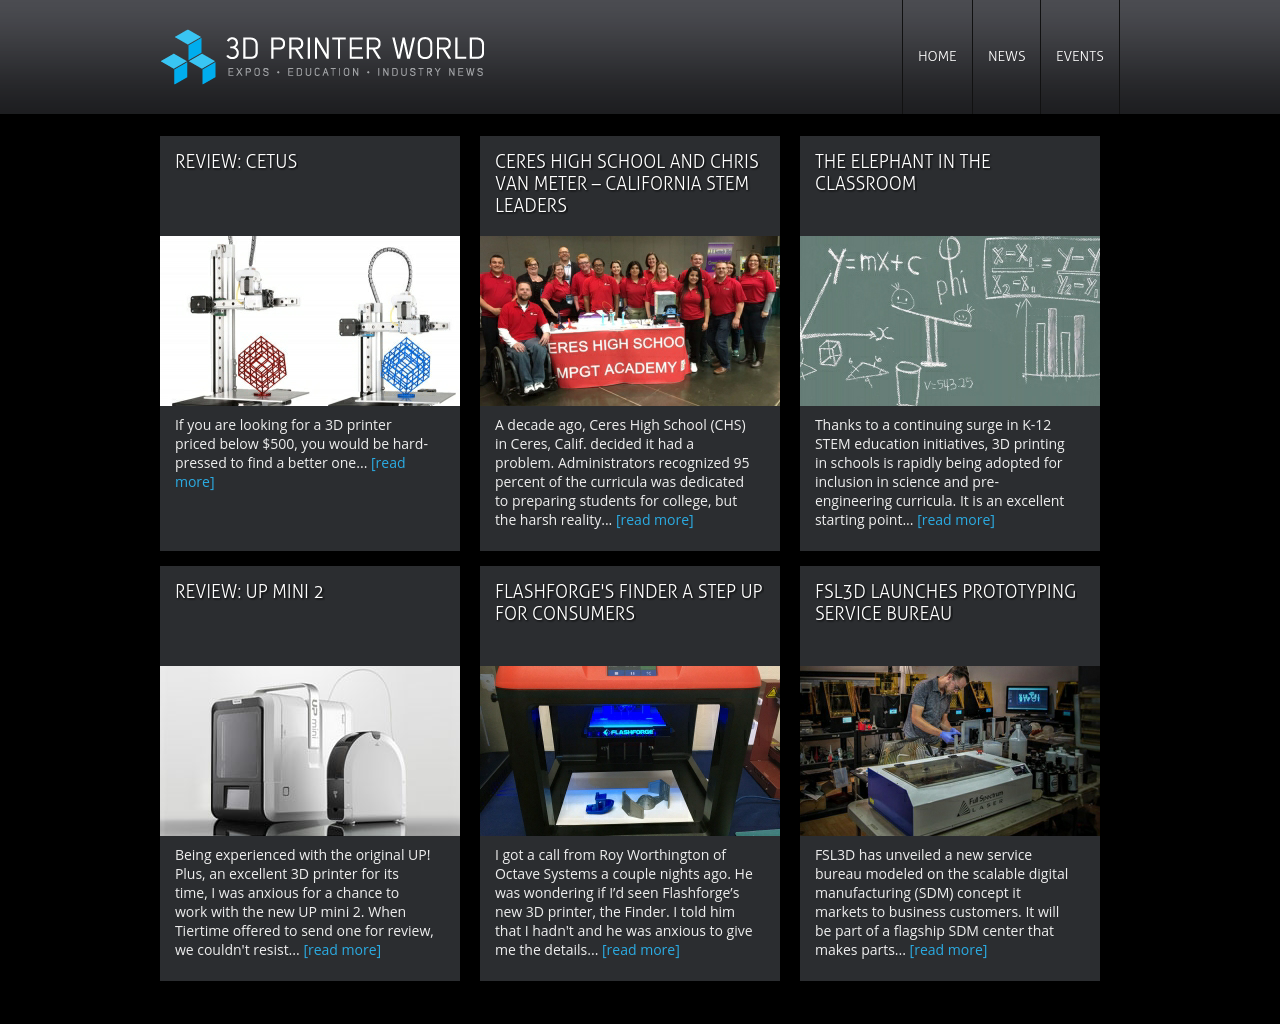 3D-Printer-World-Advertising-Reviews-Pricing